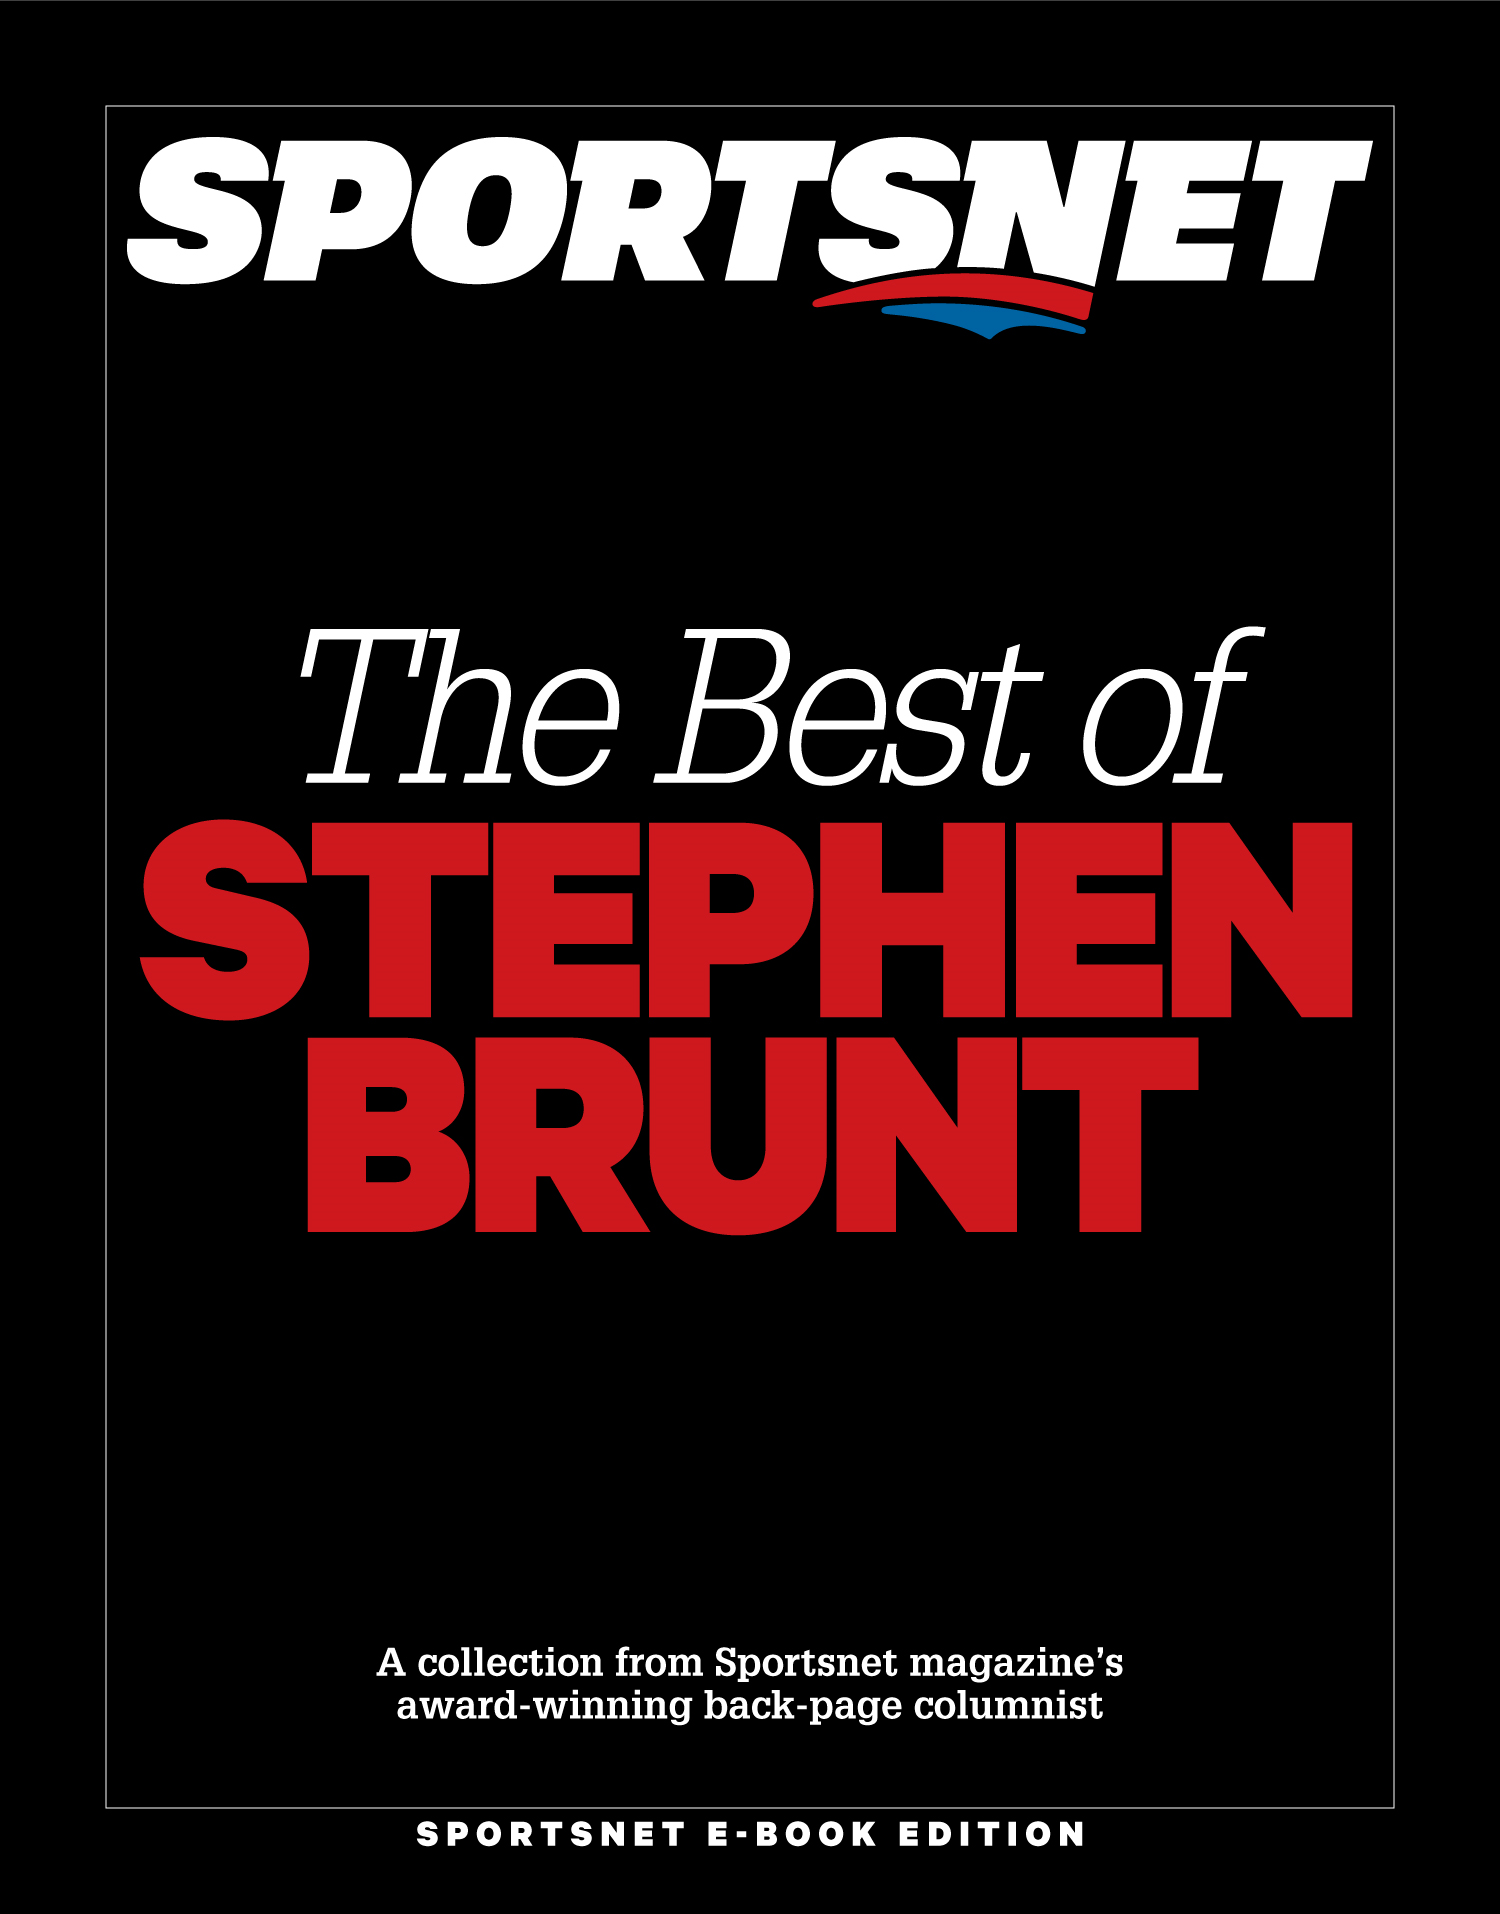 The Best of Stephen Brunt